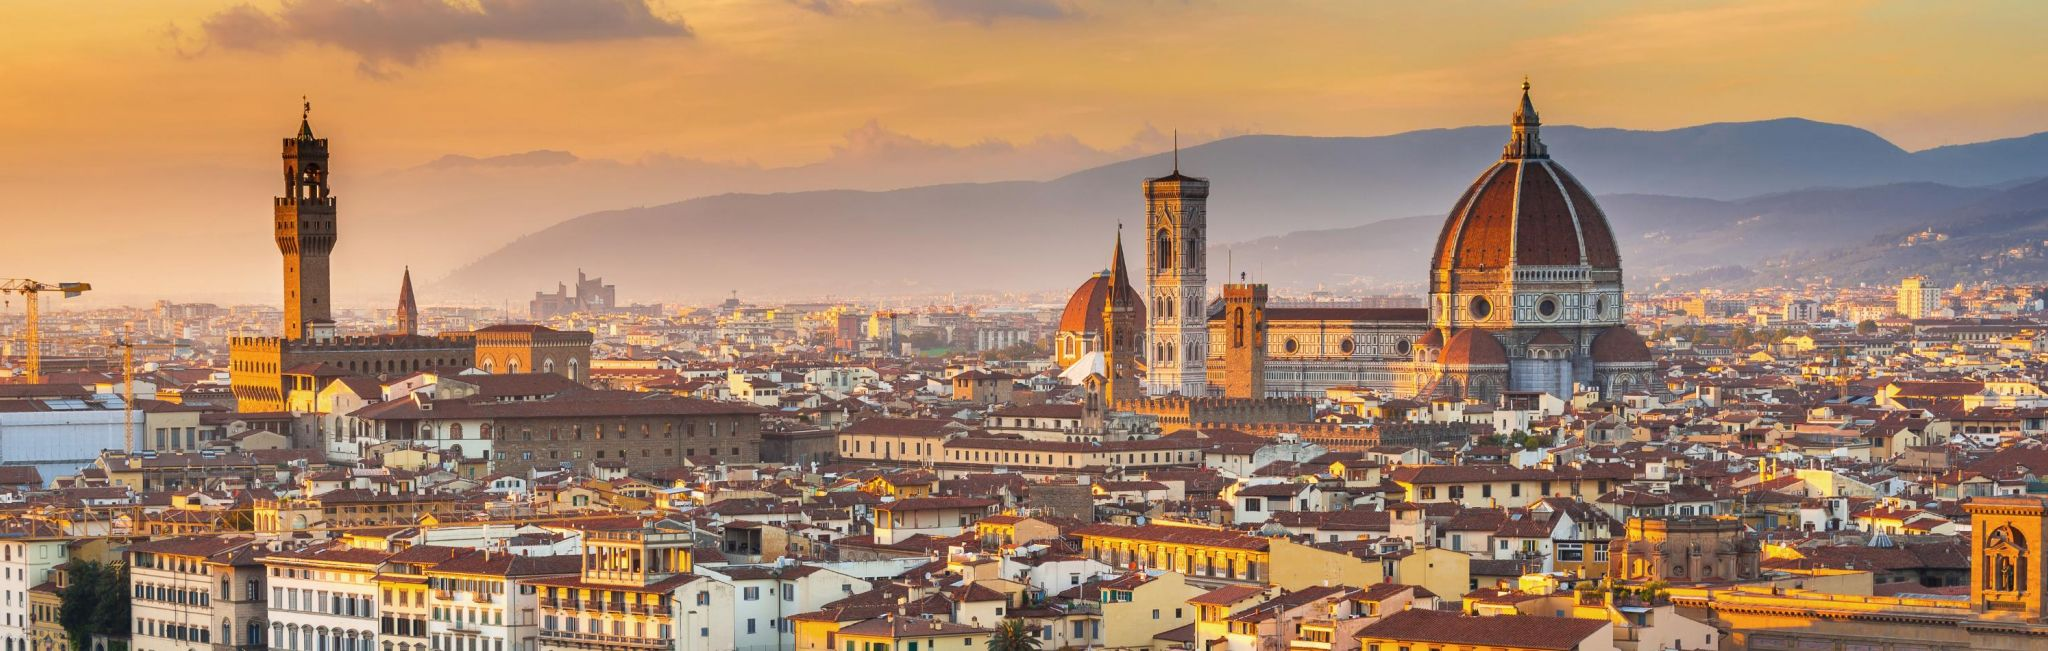 Best Tuscany Tours | Tuscany Vacations & Travel Packages ...